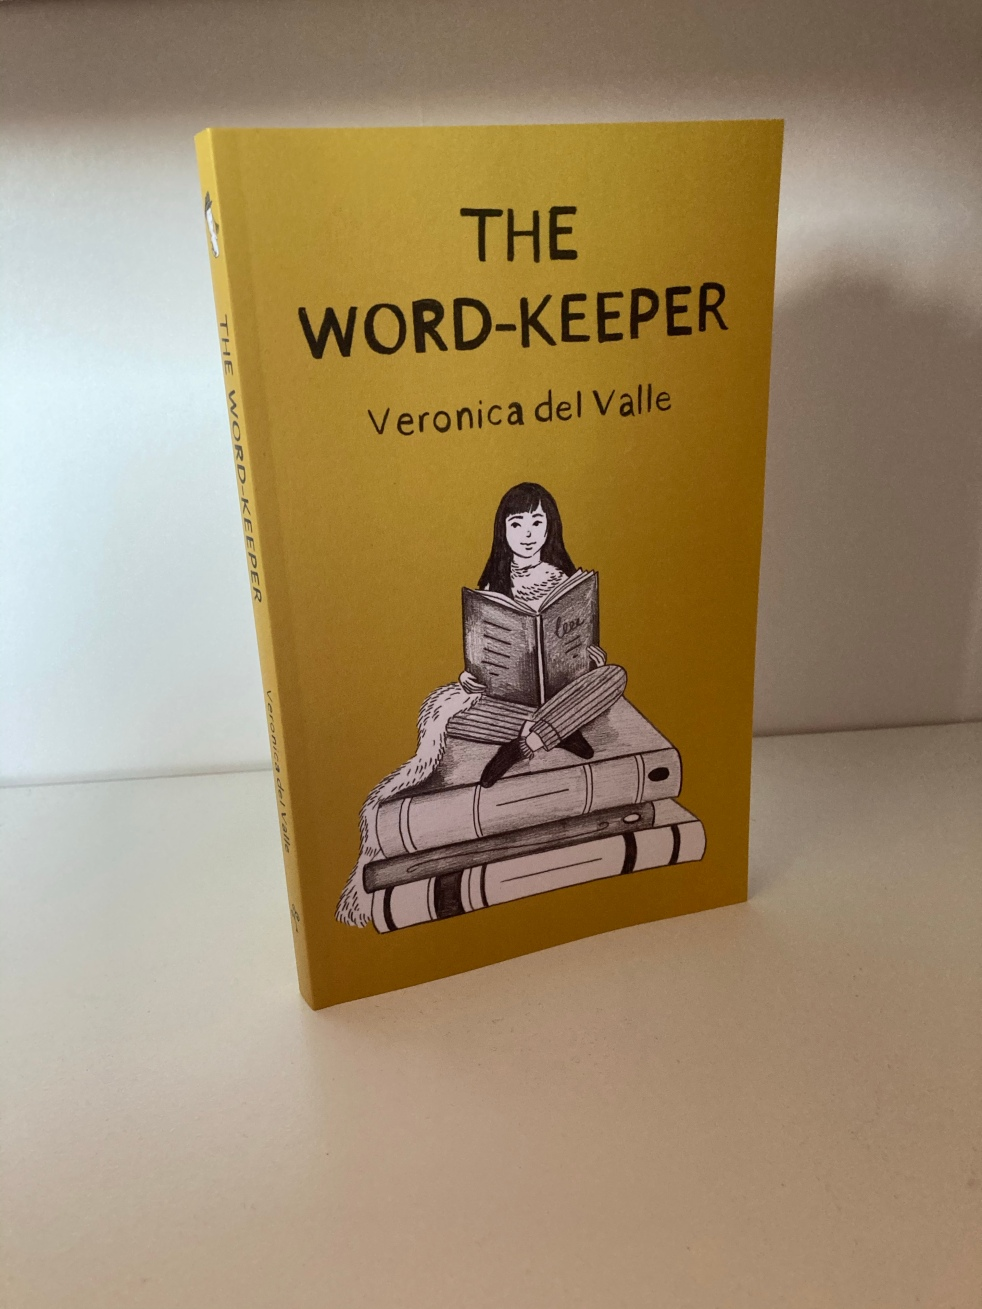 The cover of The Word-Keeper by Veronica del Valle